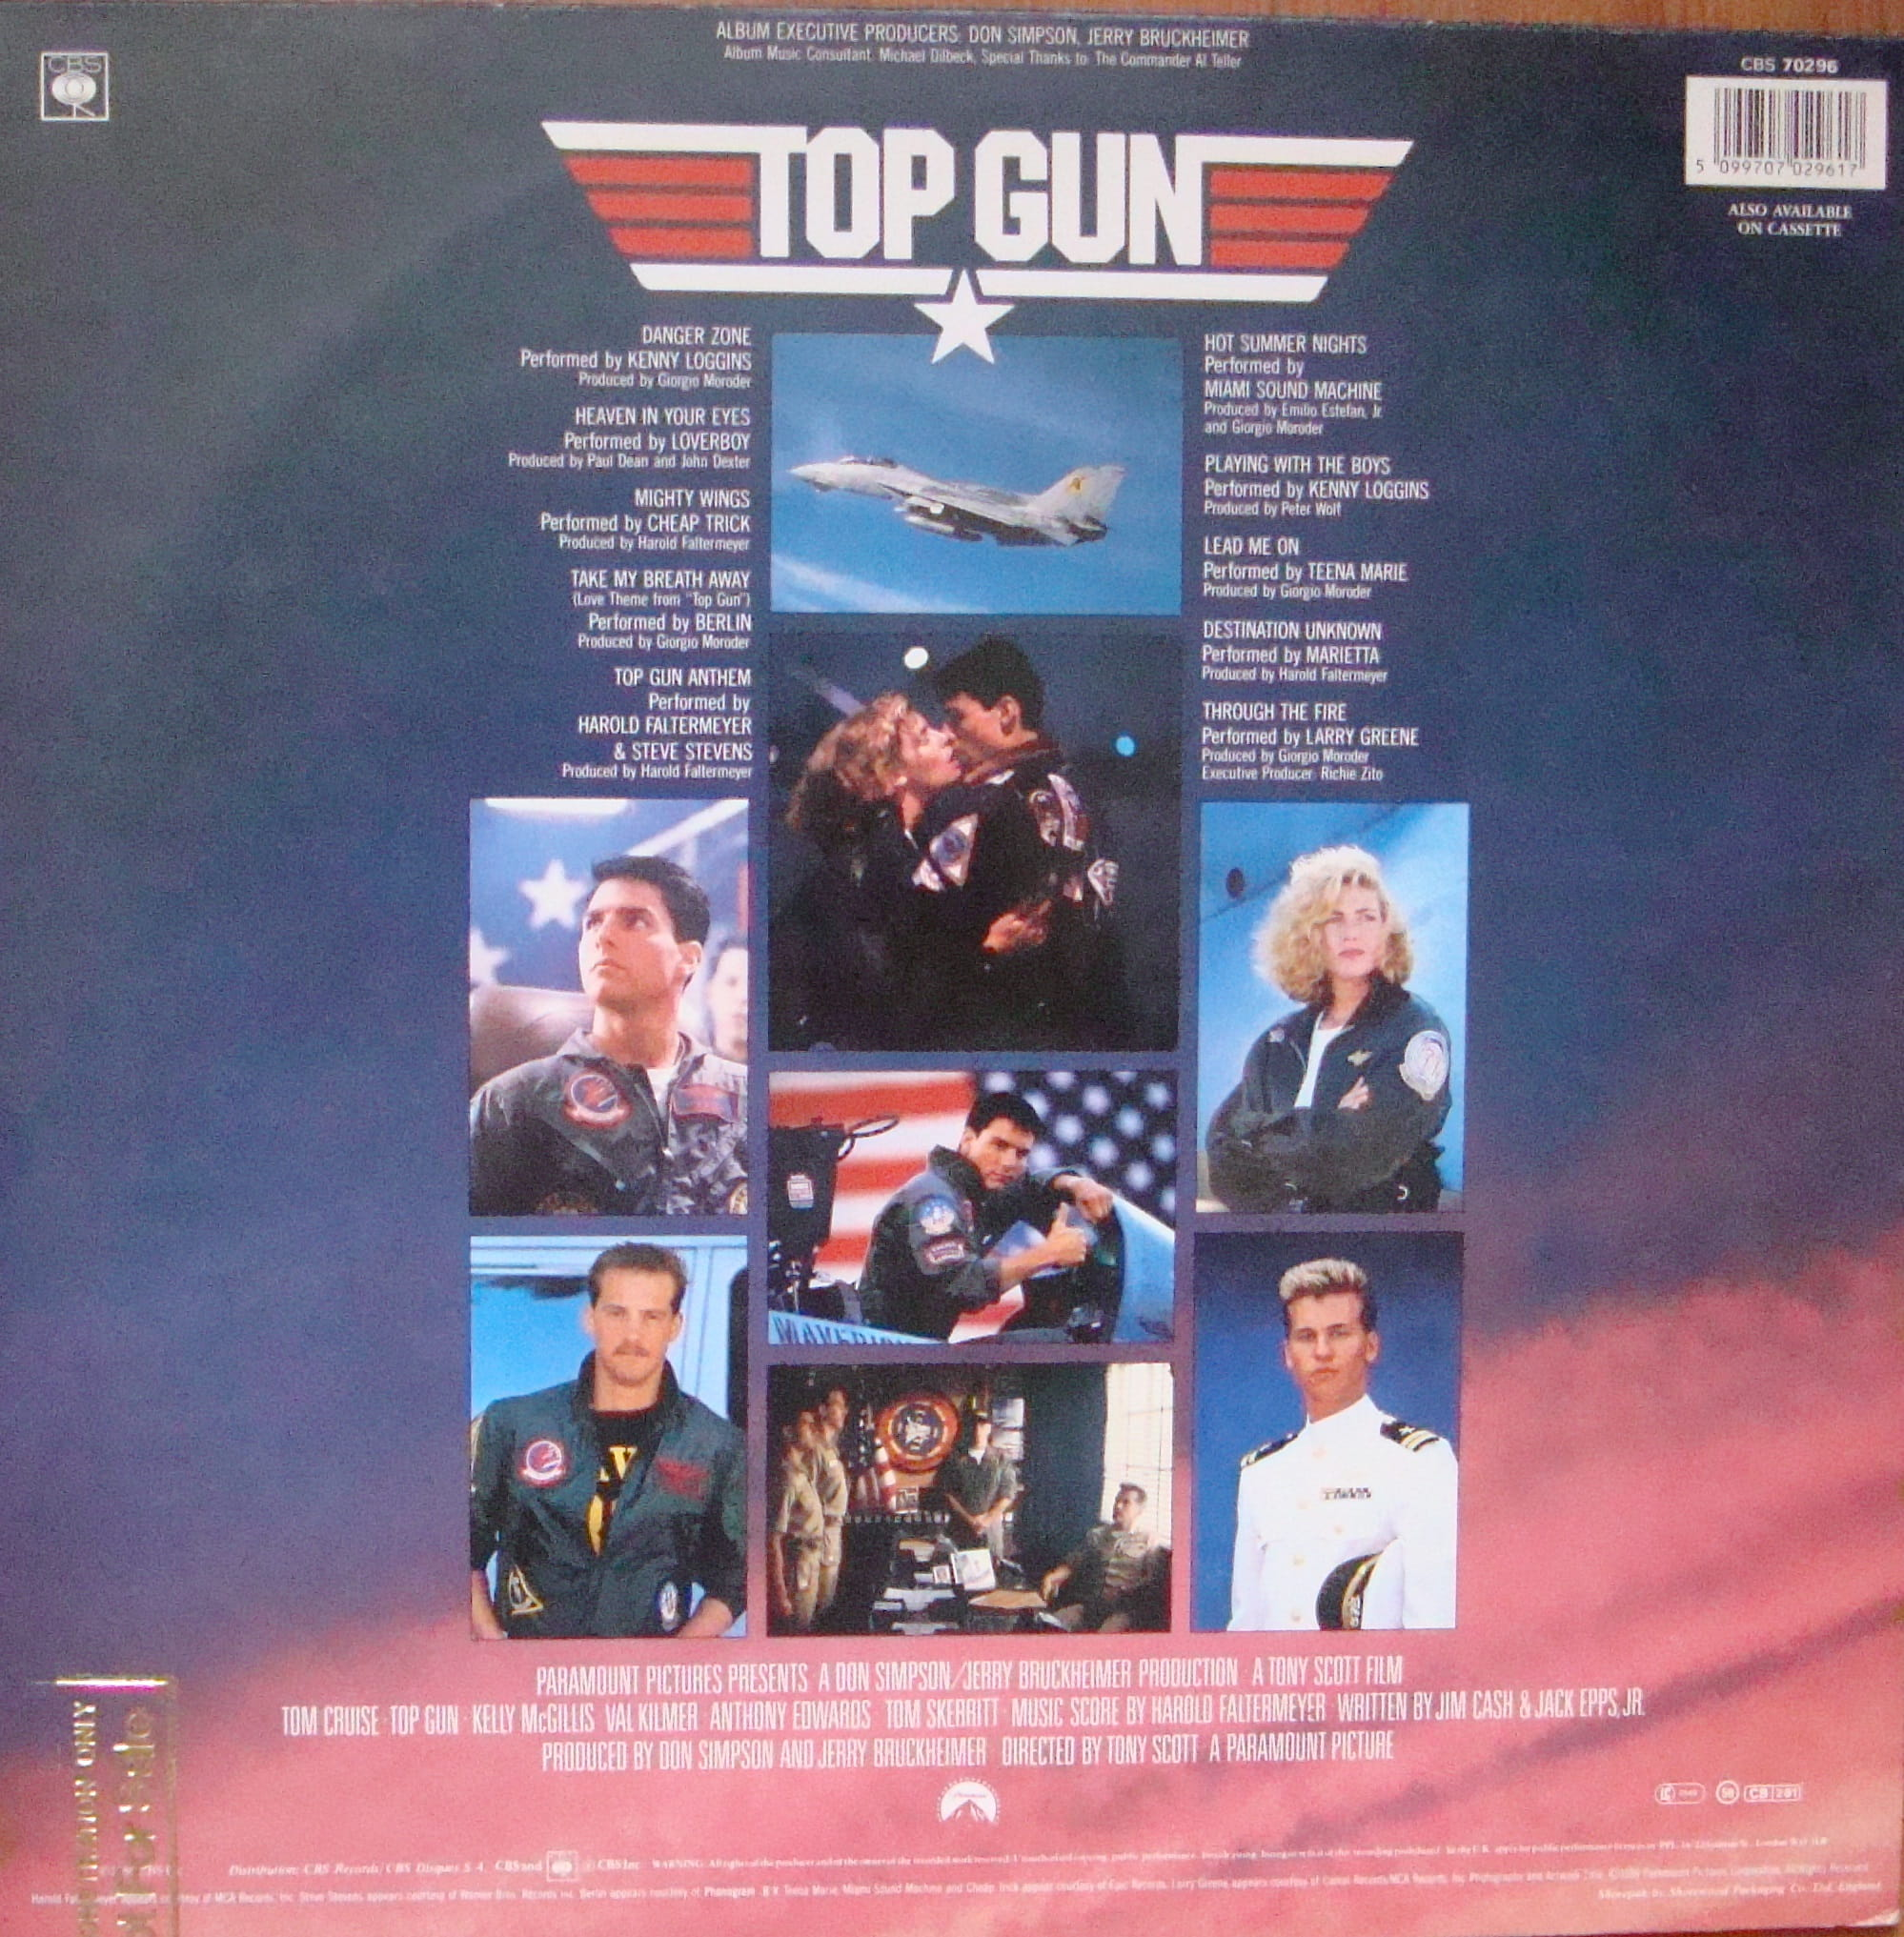 Top Gun Cbs 70296 Vinyl Promo Copy